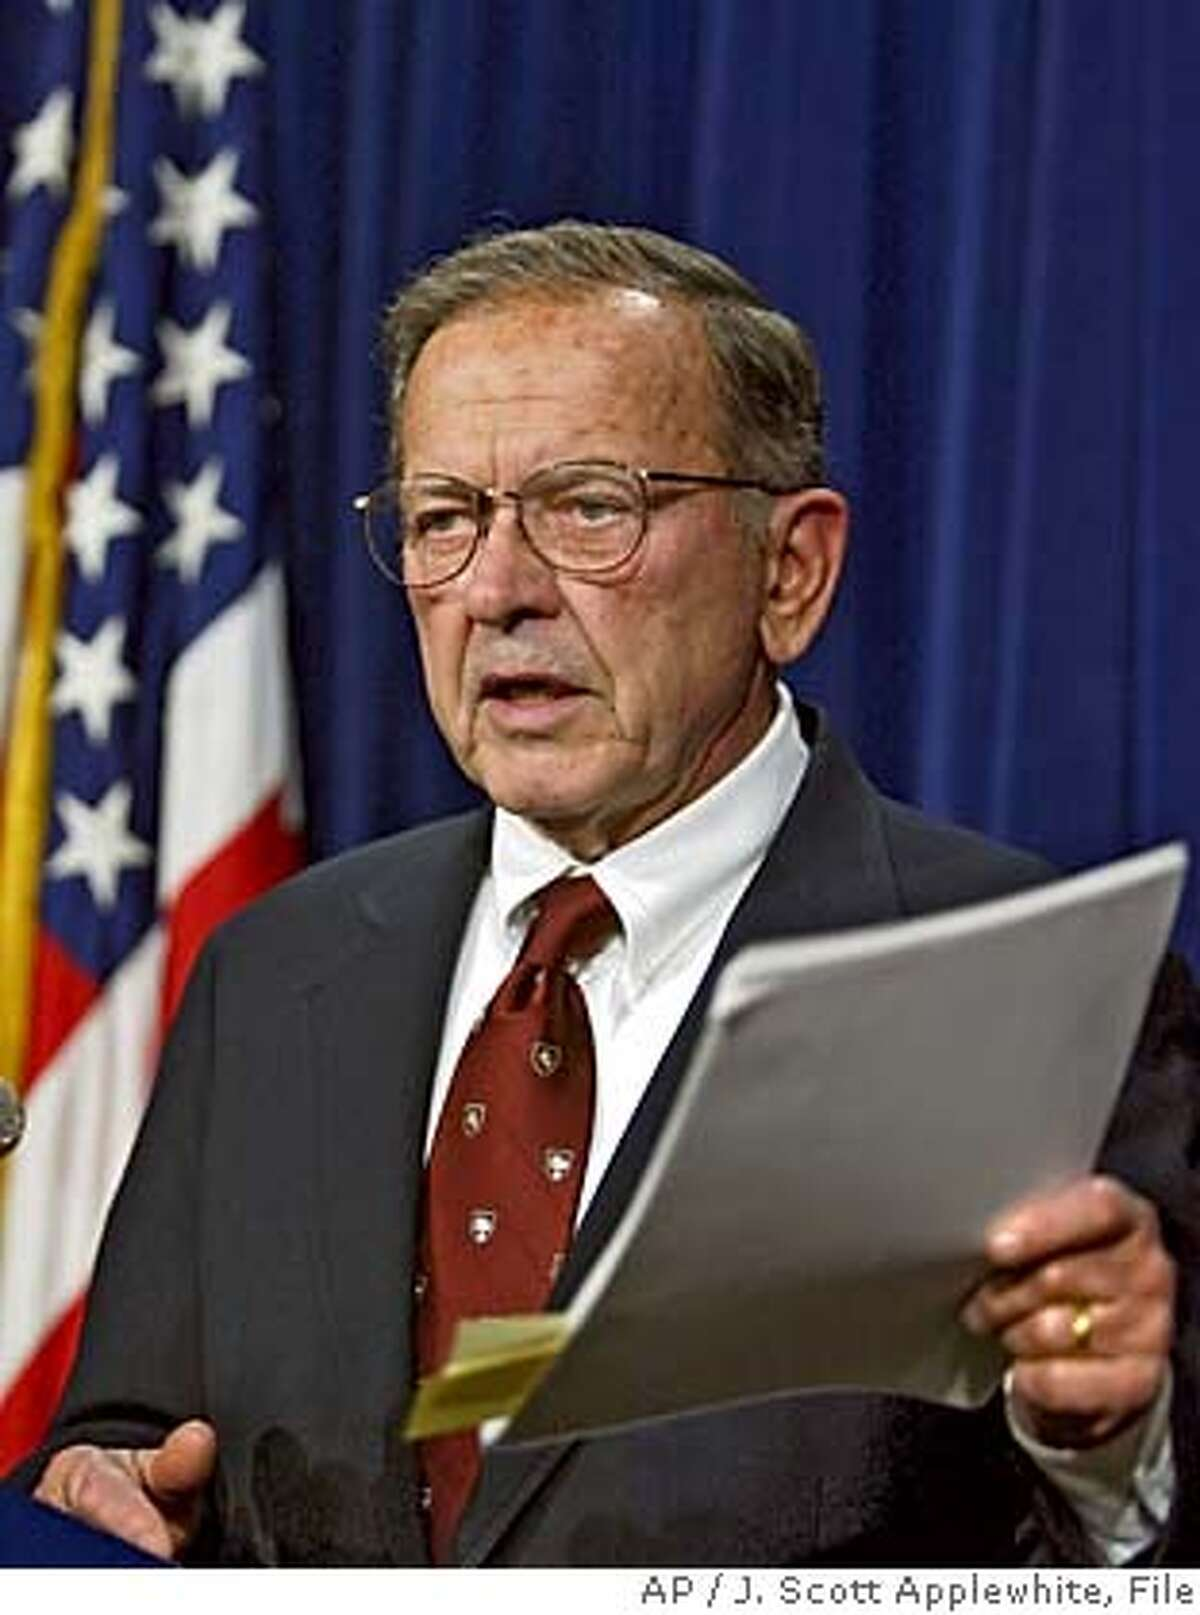 ** FILE ** Sen. Ted Stevens, R-Alaska gestures during a Capitol Hill news conference in this March 4, 2003 file photo. Between Stevens and Sen. Robert Byrd, D-W.Va., they have spent nearly 80 cantankerous years in the Senate. Neither minds intimidating a colleague, yet a deferential bond was forged long ago. (AP Photo/J. Scott Applewhite, Files) Sen. Robert Byrd MARCH 4, 2003 FILE PHOTO